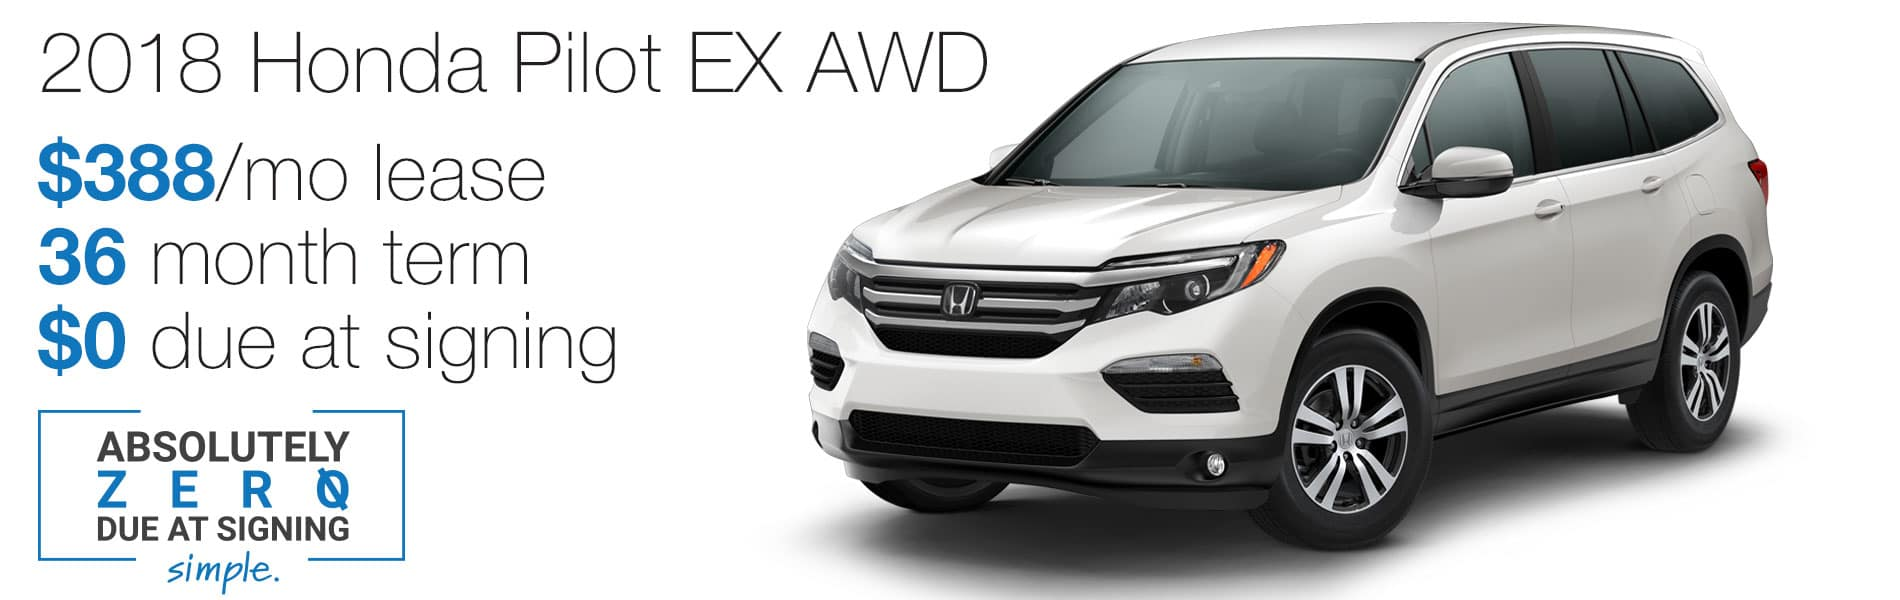 Lease a 2018 Honda Pilot EX AWD for $388 per month with absolutely $0 due at signing